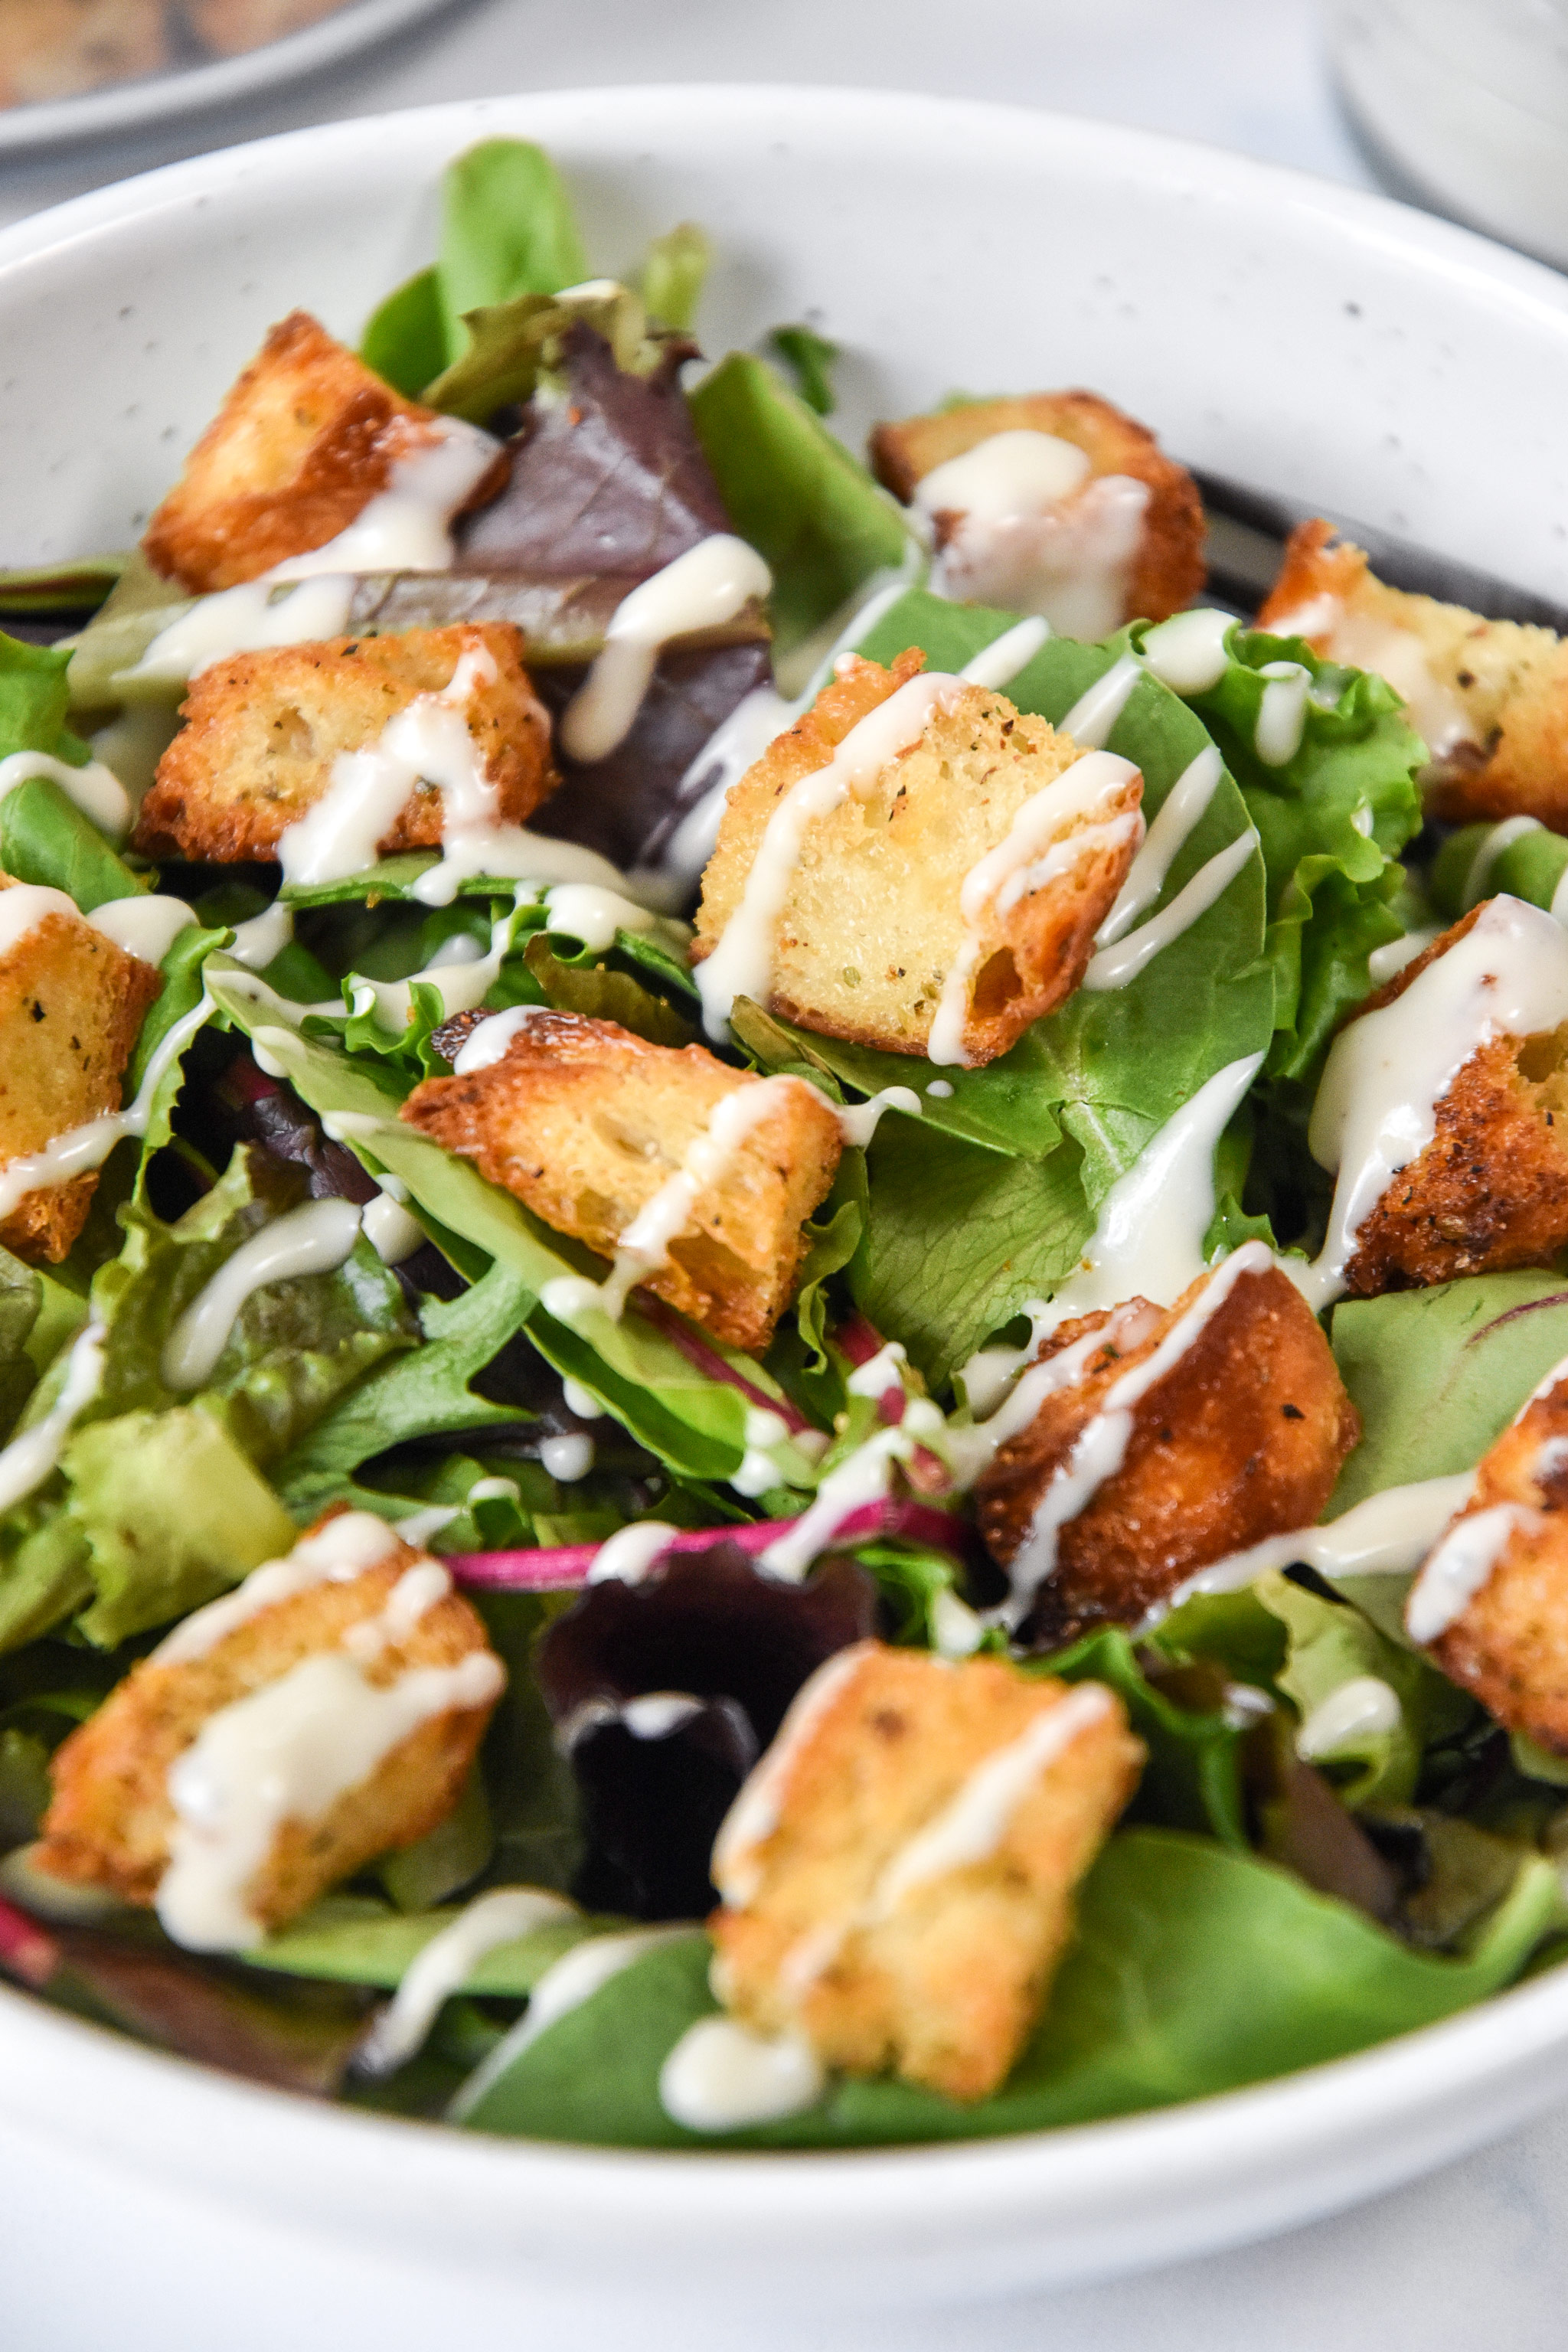 homemade croutons on top of a green salad with ranch drizzle.